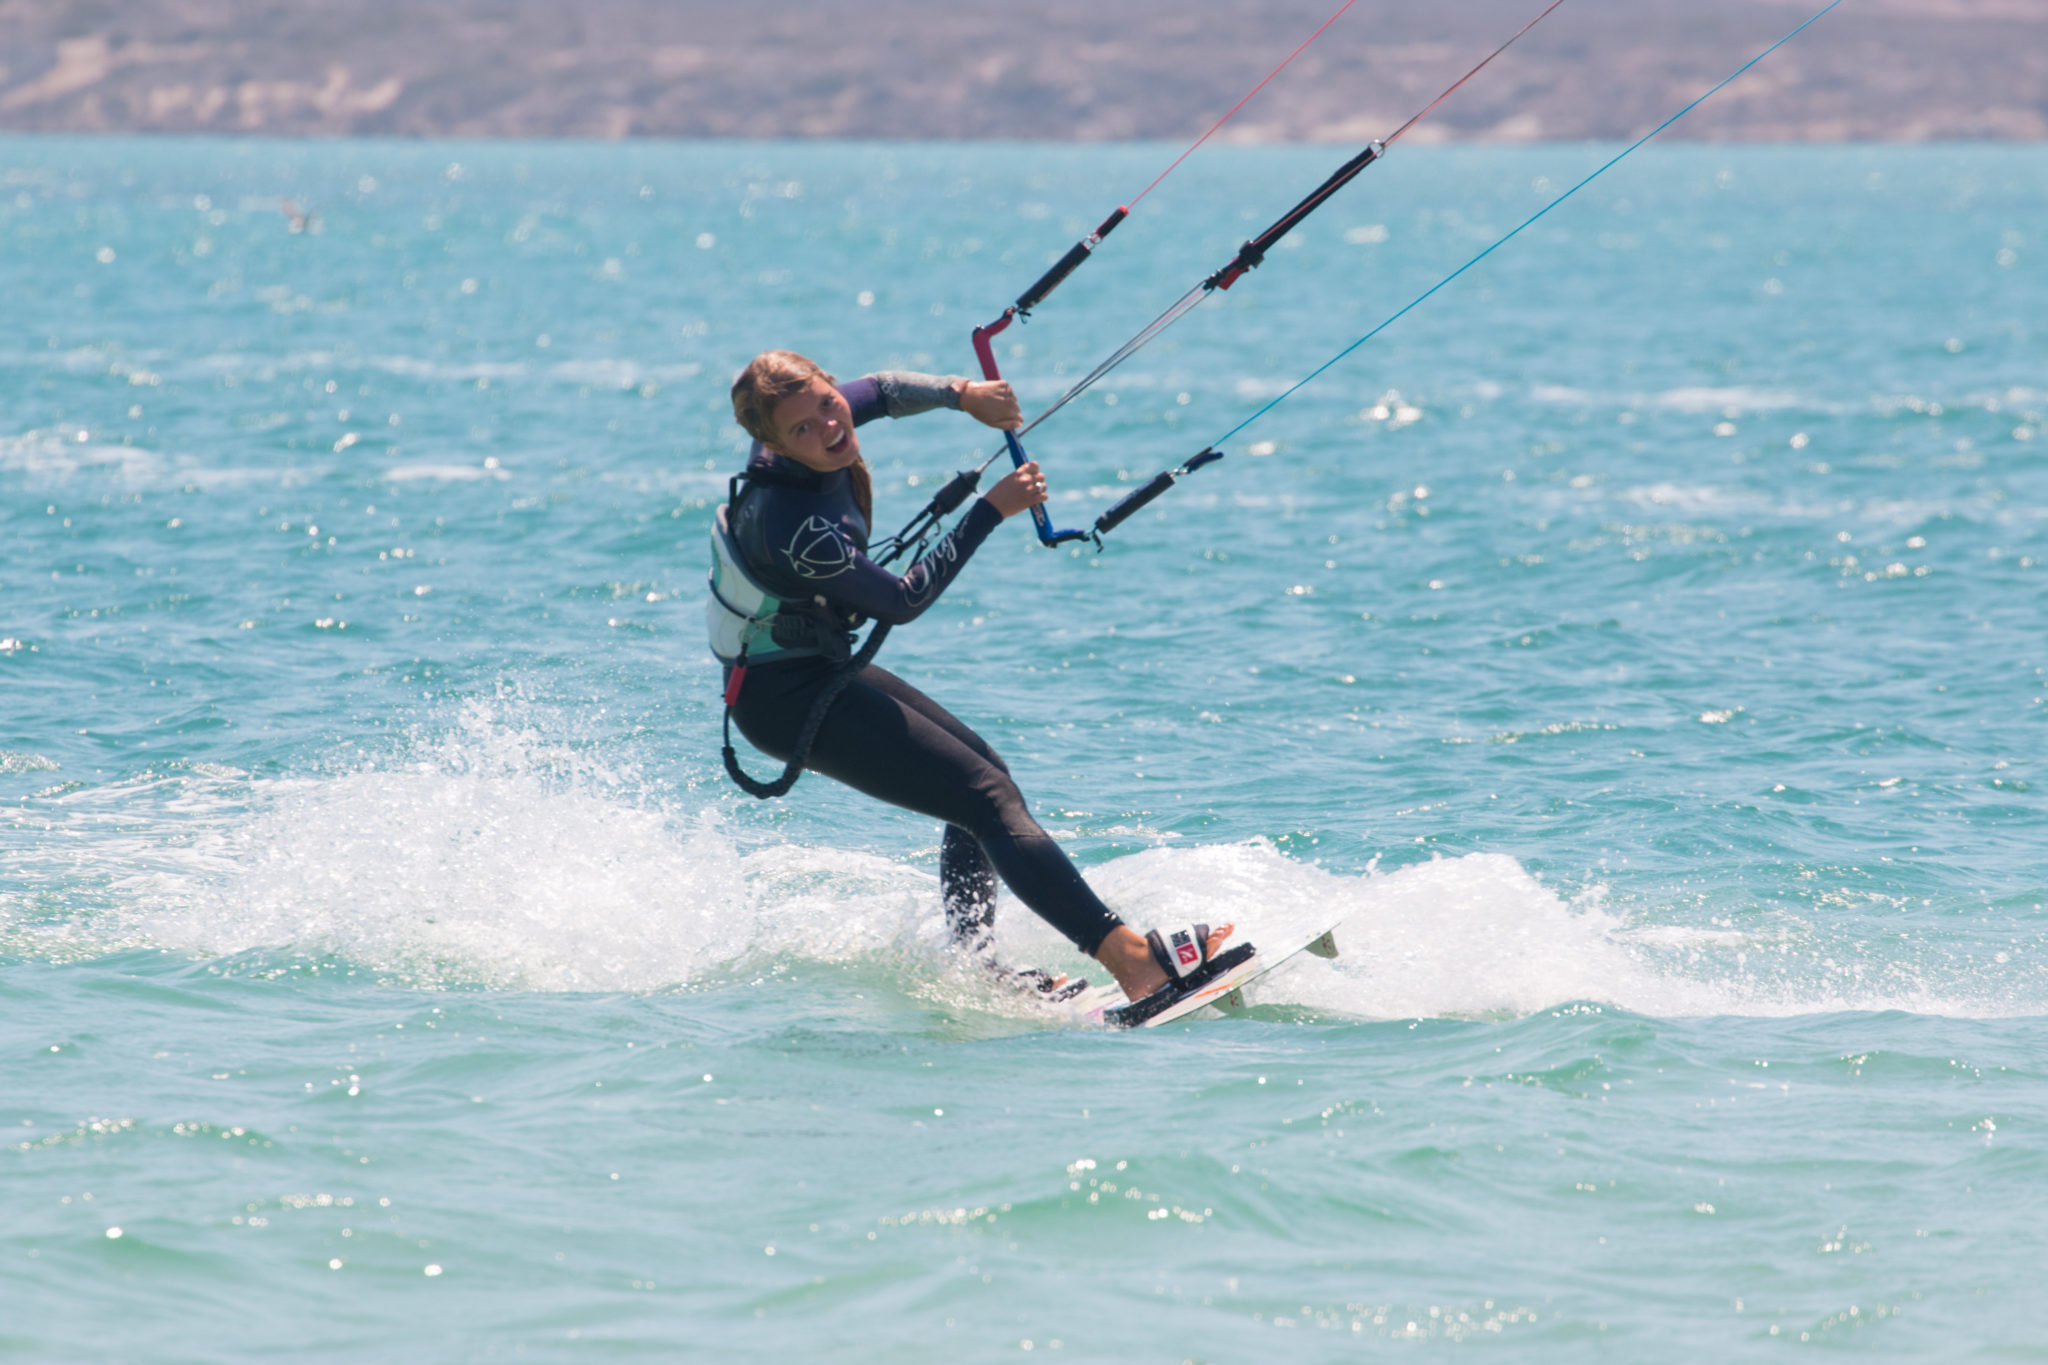 Kitesurf is another passion of mine - About me - Tremento Hospitality Marketing